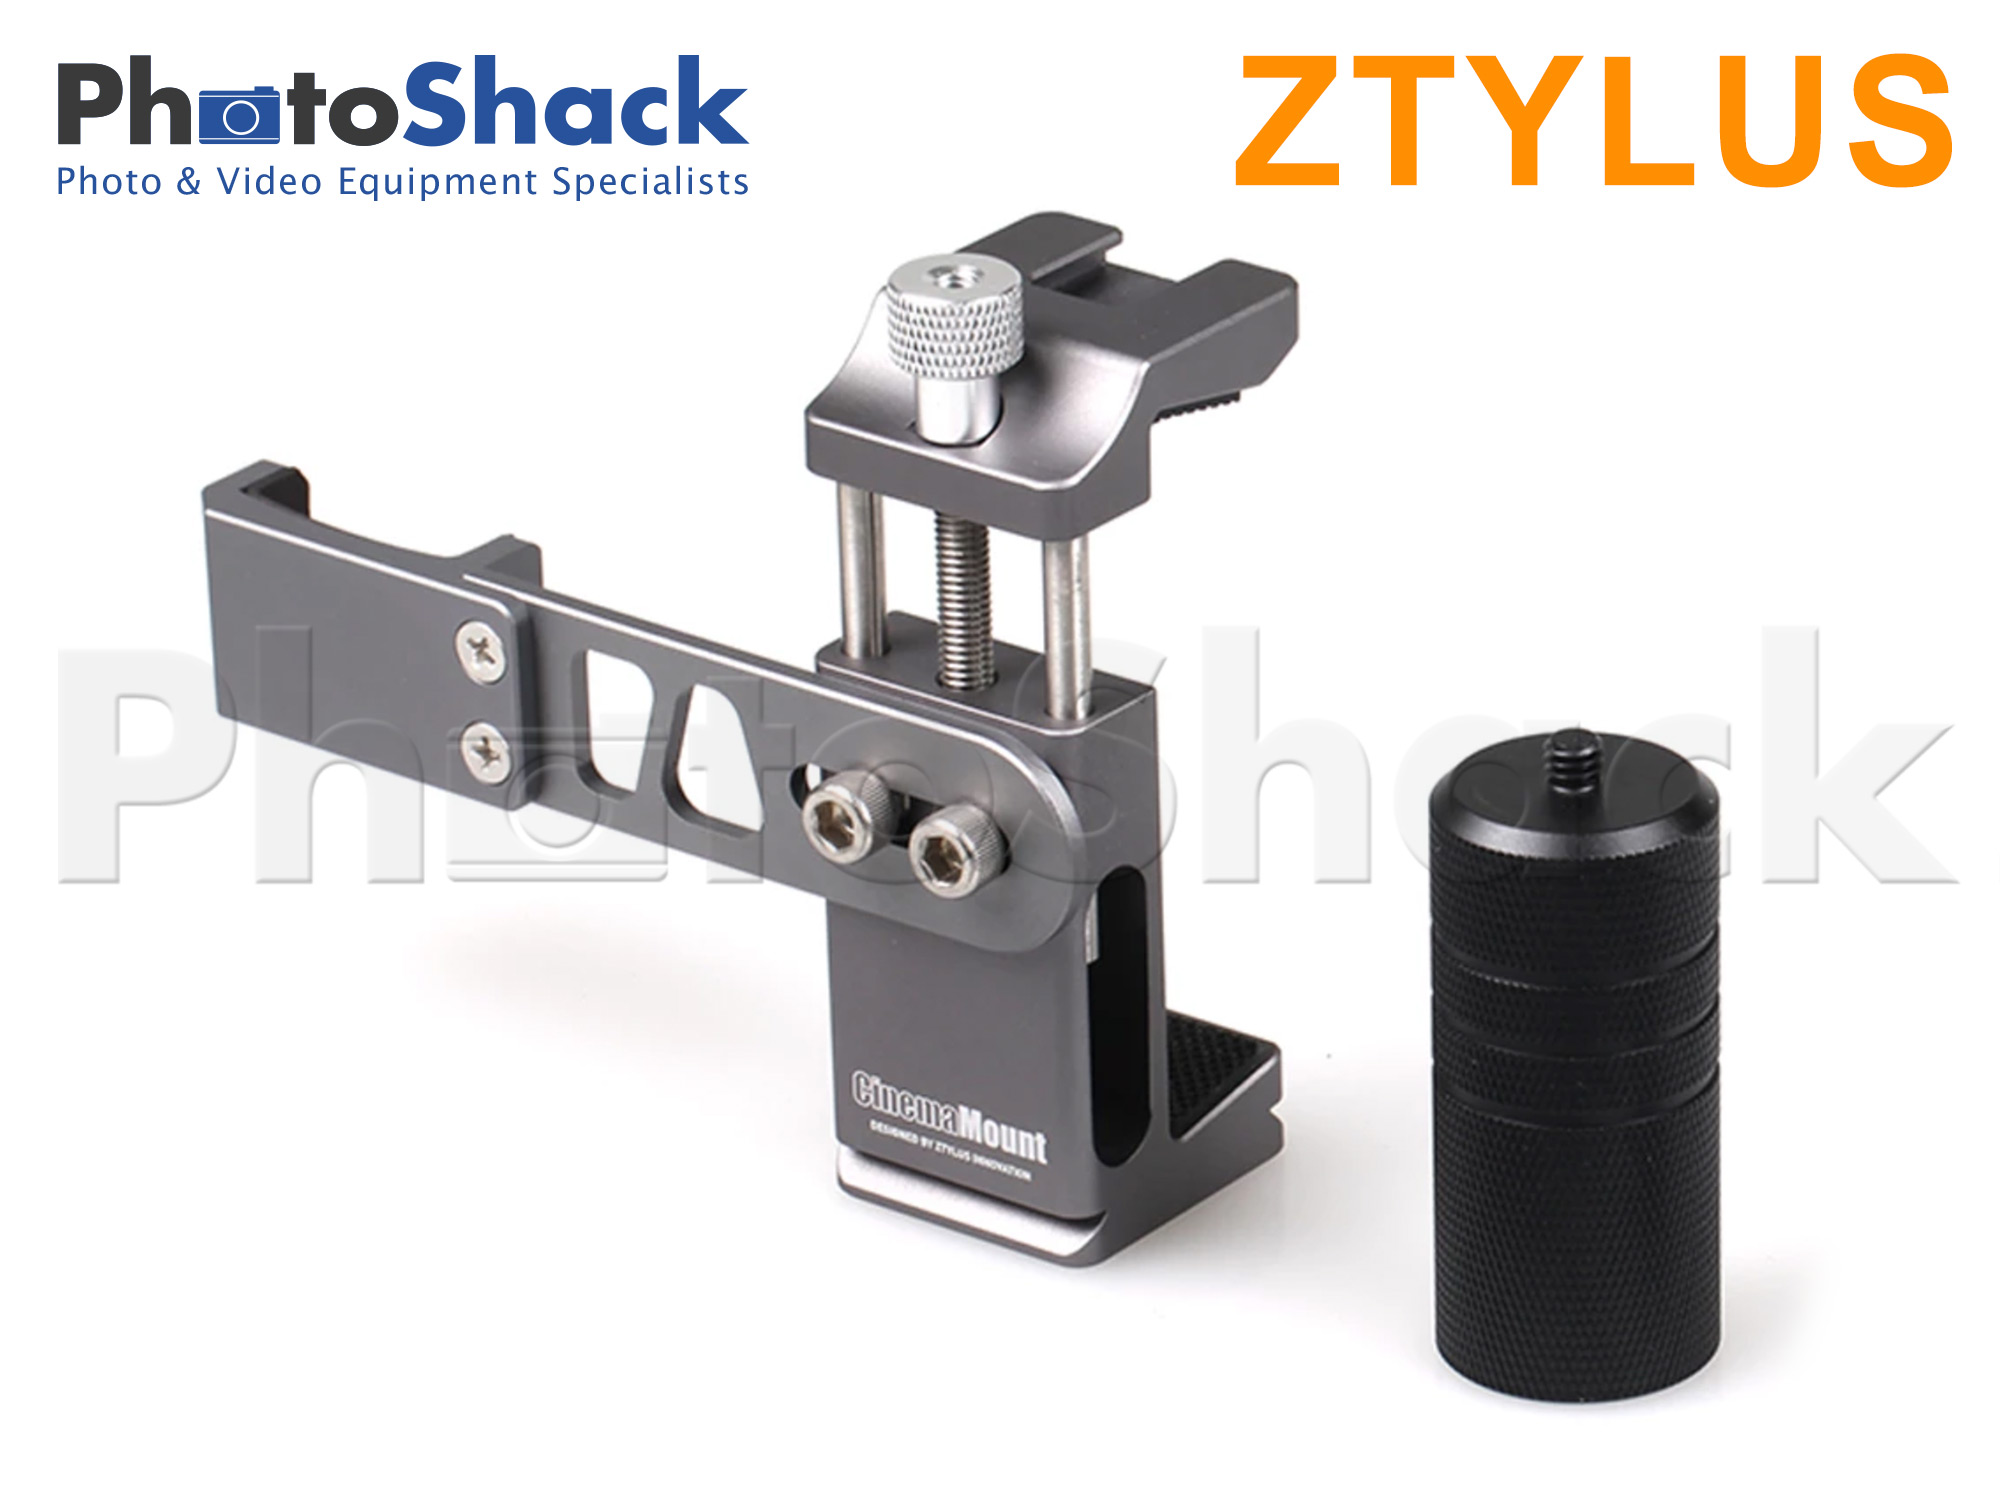 Ztylus Cinema Mount Osmo Pocket Kit